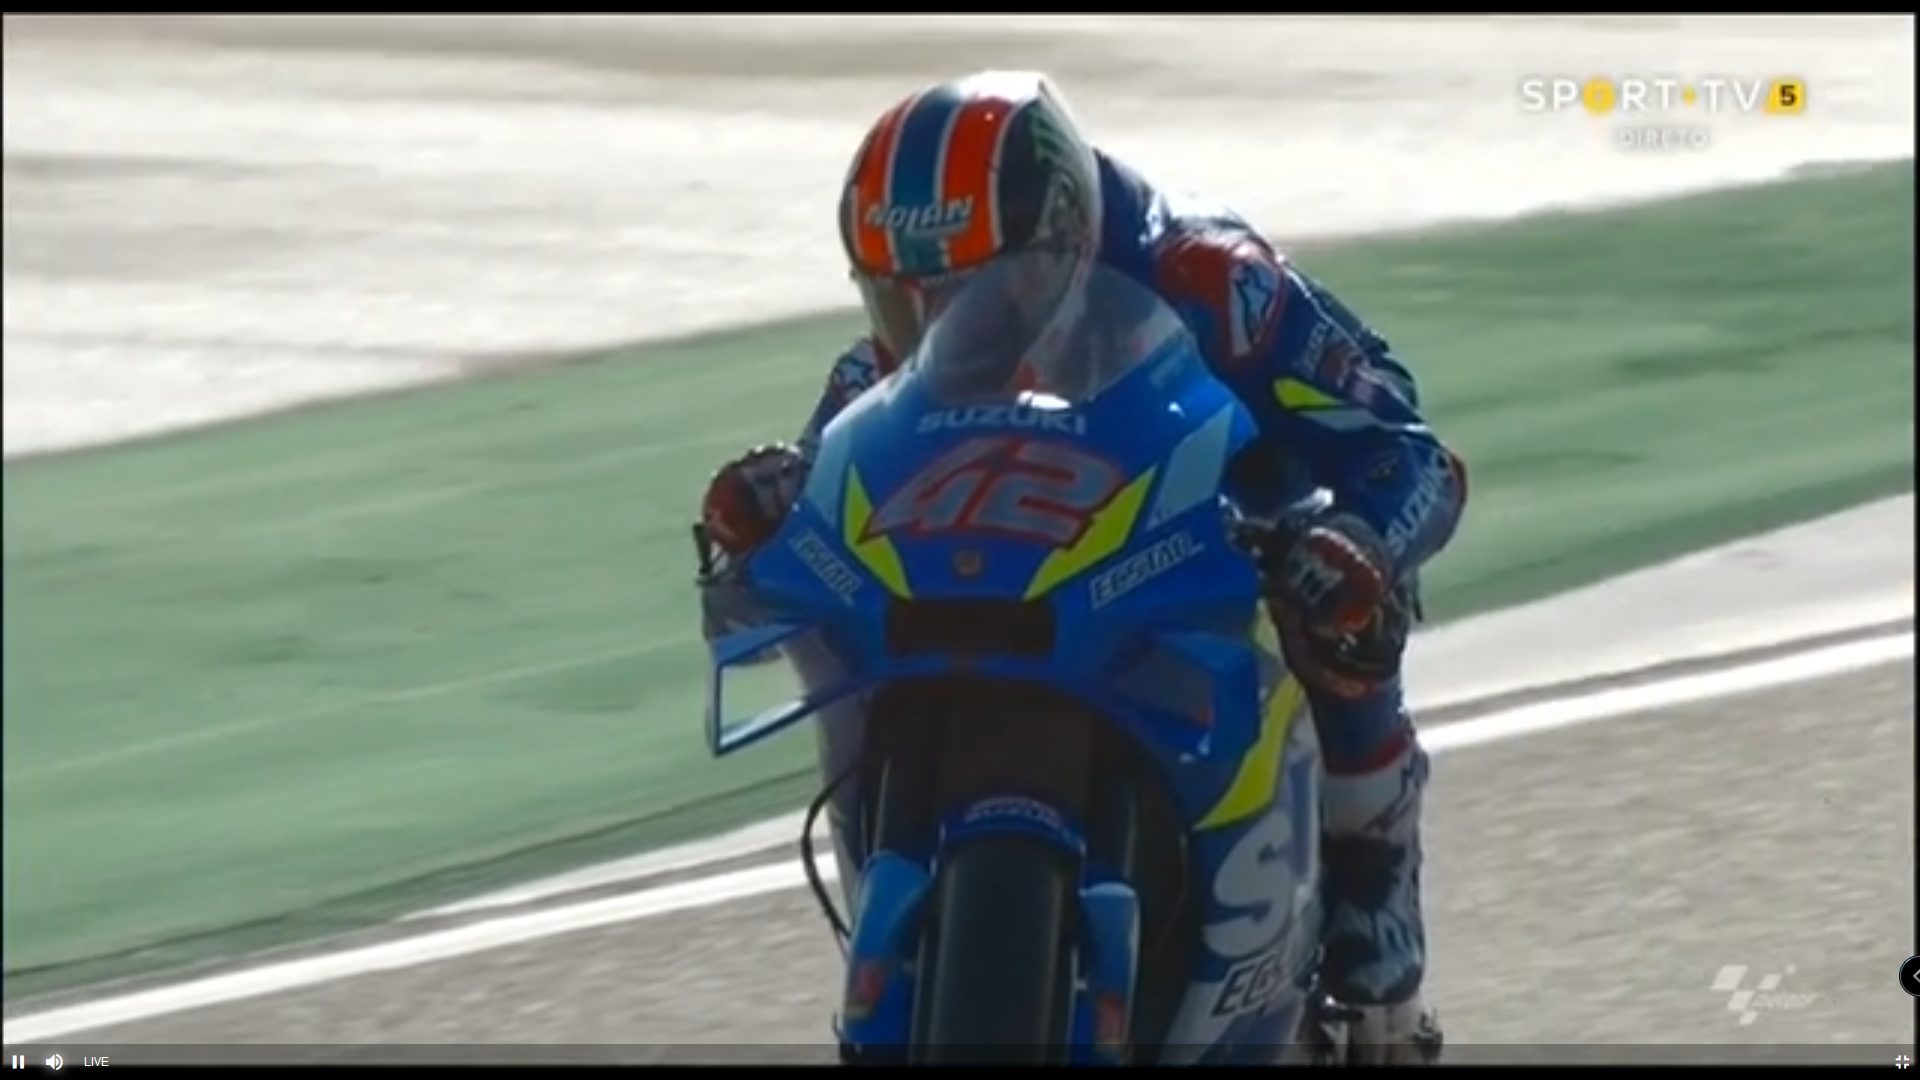 🏁🇪🇸 Aragon GP FP3: Alex Rins Opportunist